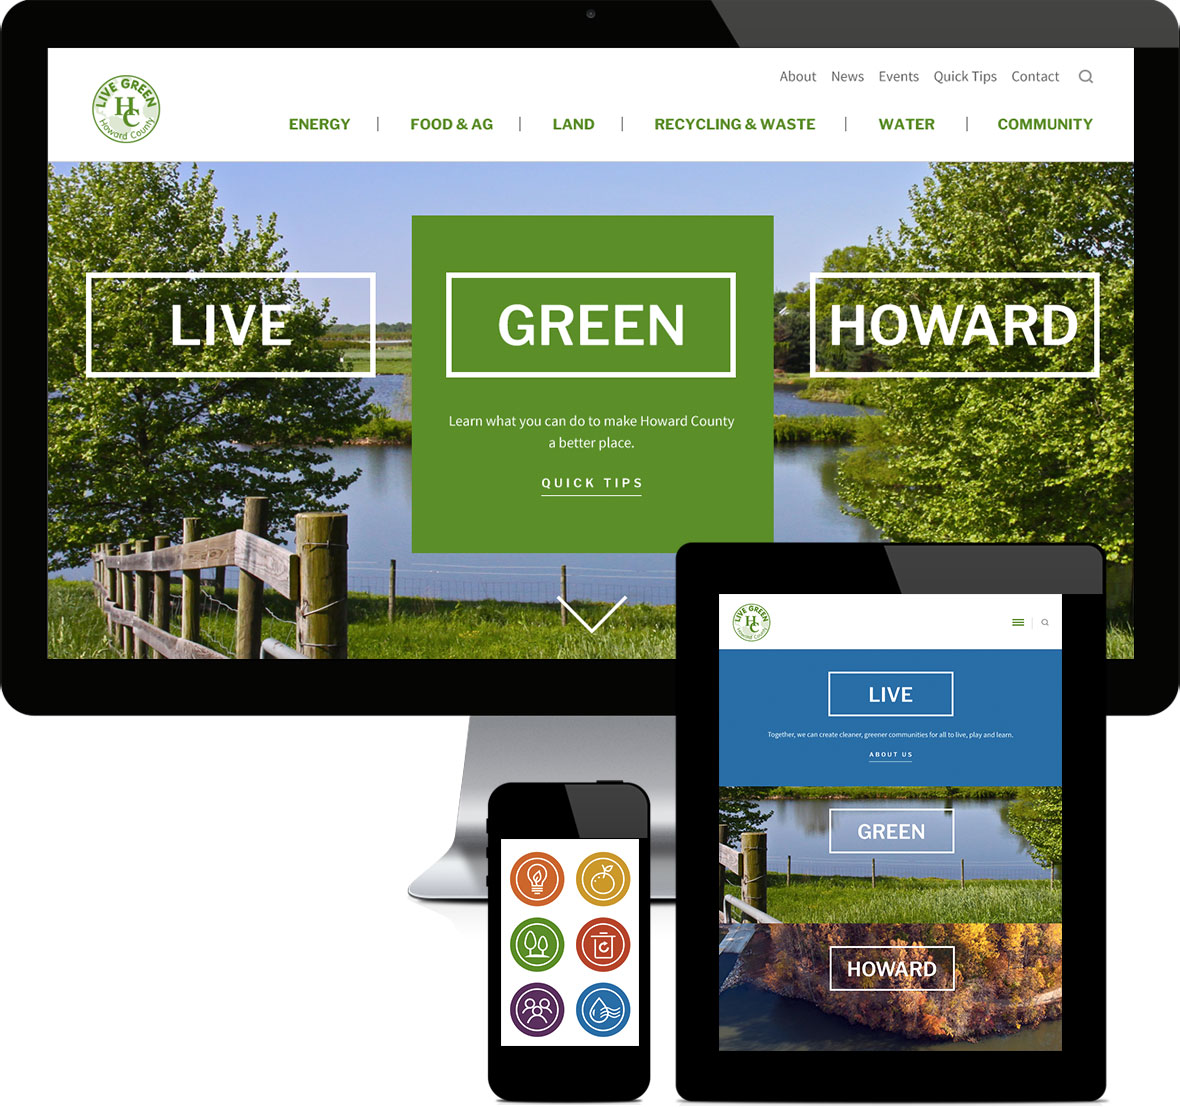 Live Green Howard responsive design